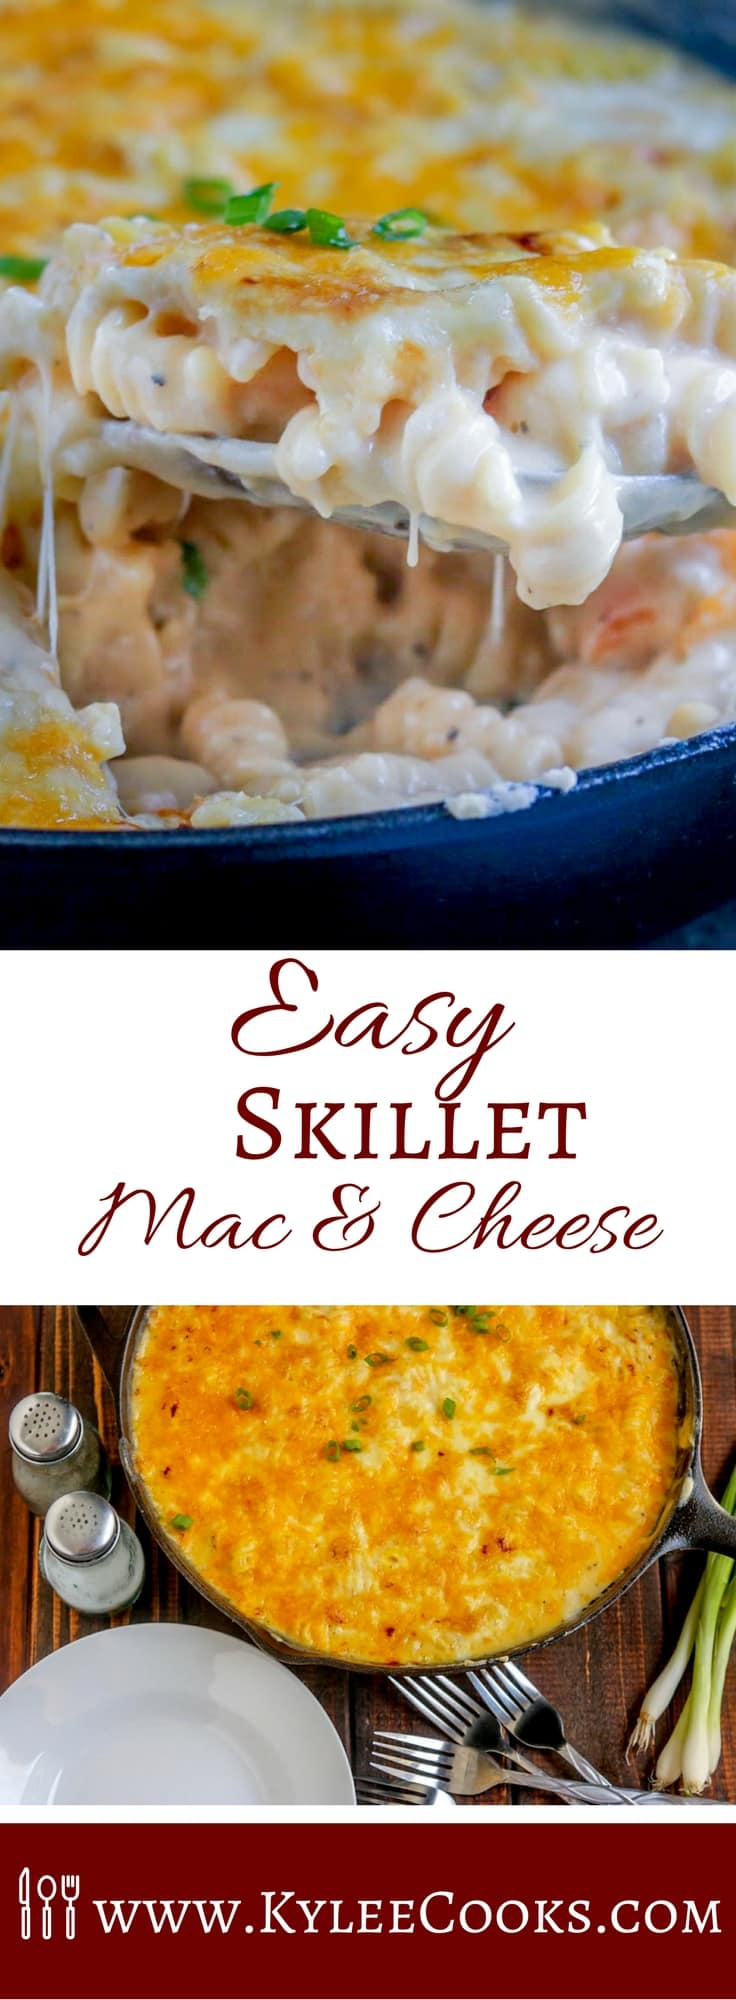 Comfort food at its finest, this skillet mac & cheese is so easy! Just the skillet and a pasta pot, the and a quick broil, and this is ready FAST!